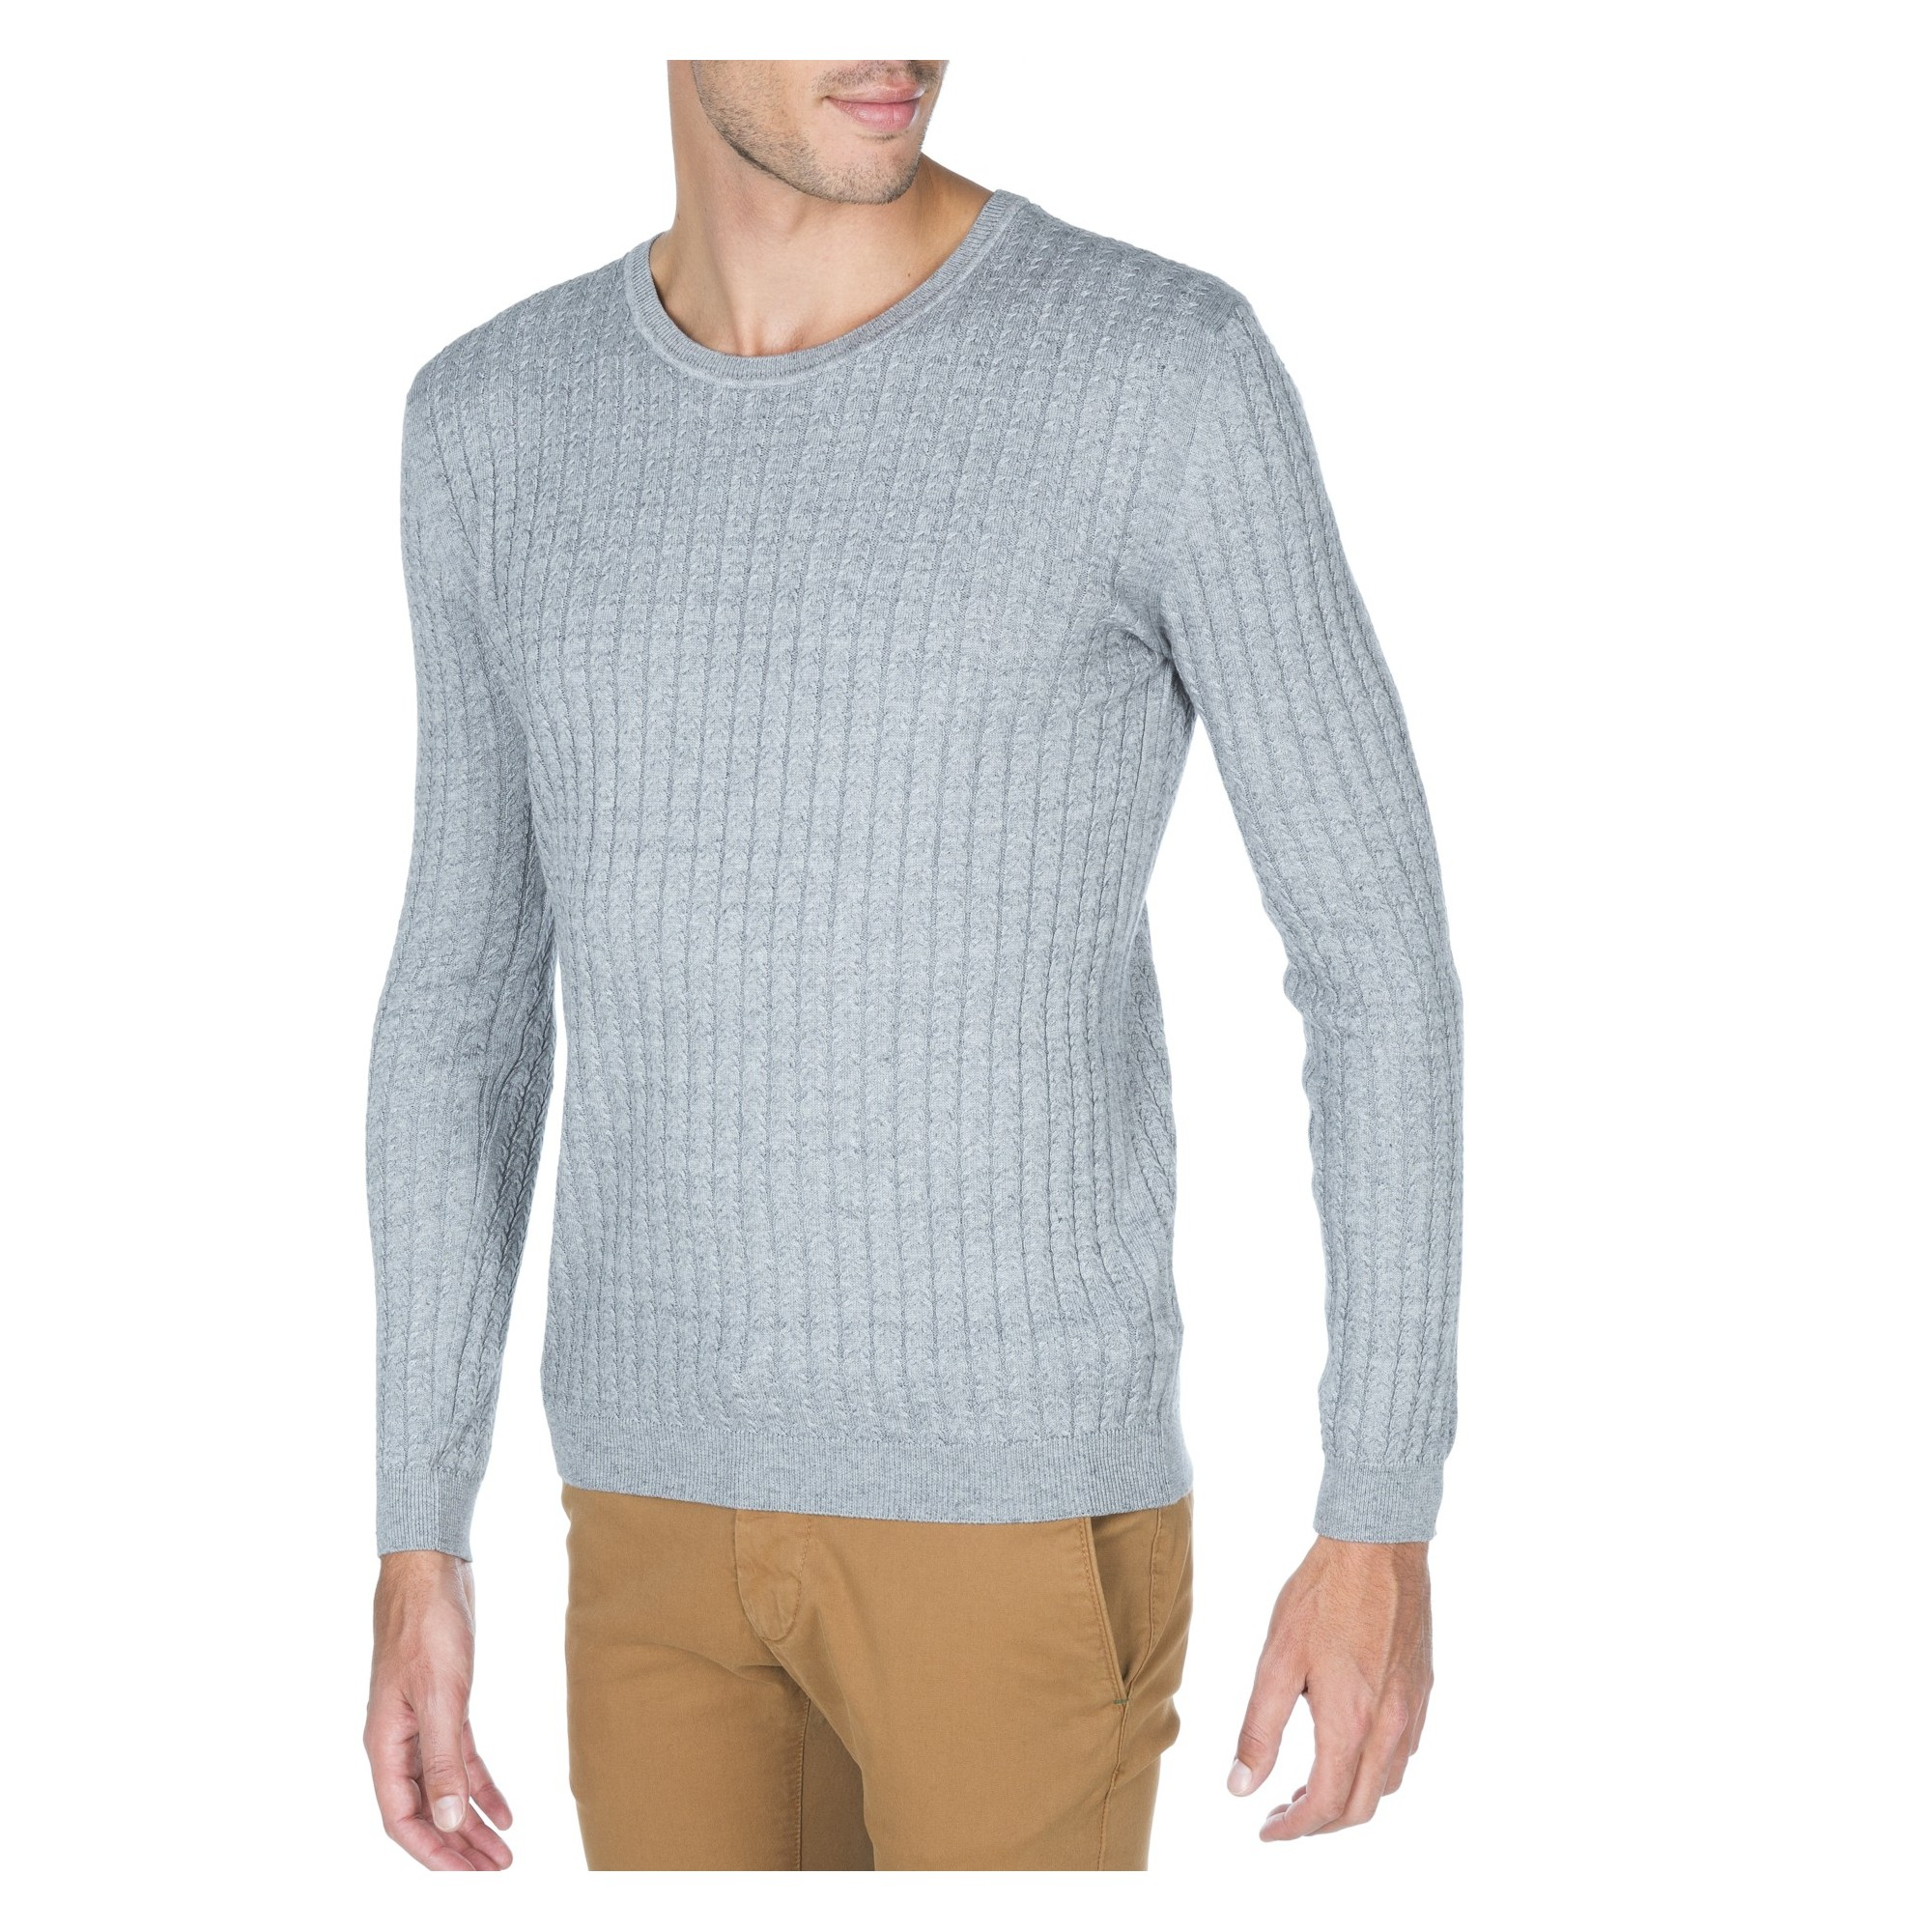 Aug 23, · Unlike wool, cashmere, and other fabrics, cotton sweaters can be washed in the washing machine; however, you need to follow certain guidelines, such as using the delicate wash cycle and laying the sweater flat to dry, to keep the sweater looking great for as long as possible%(10).